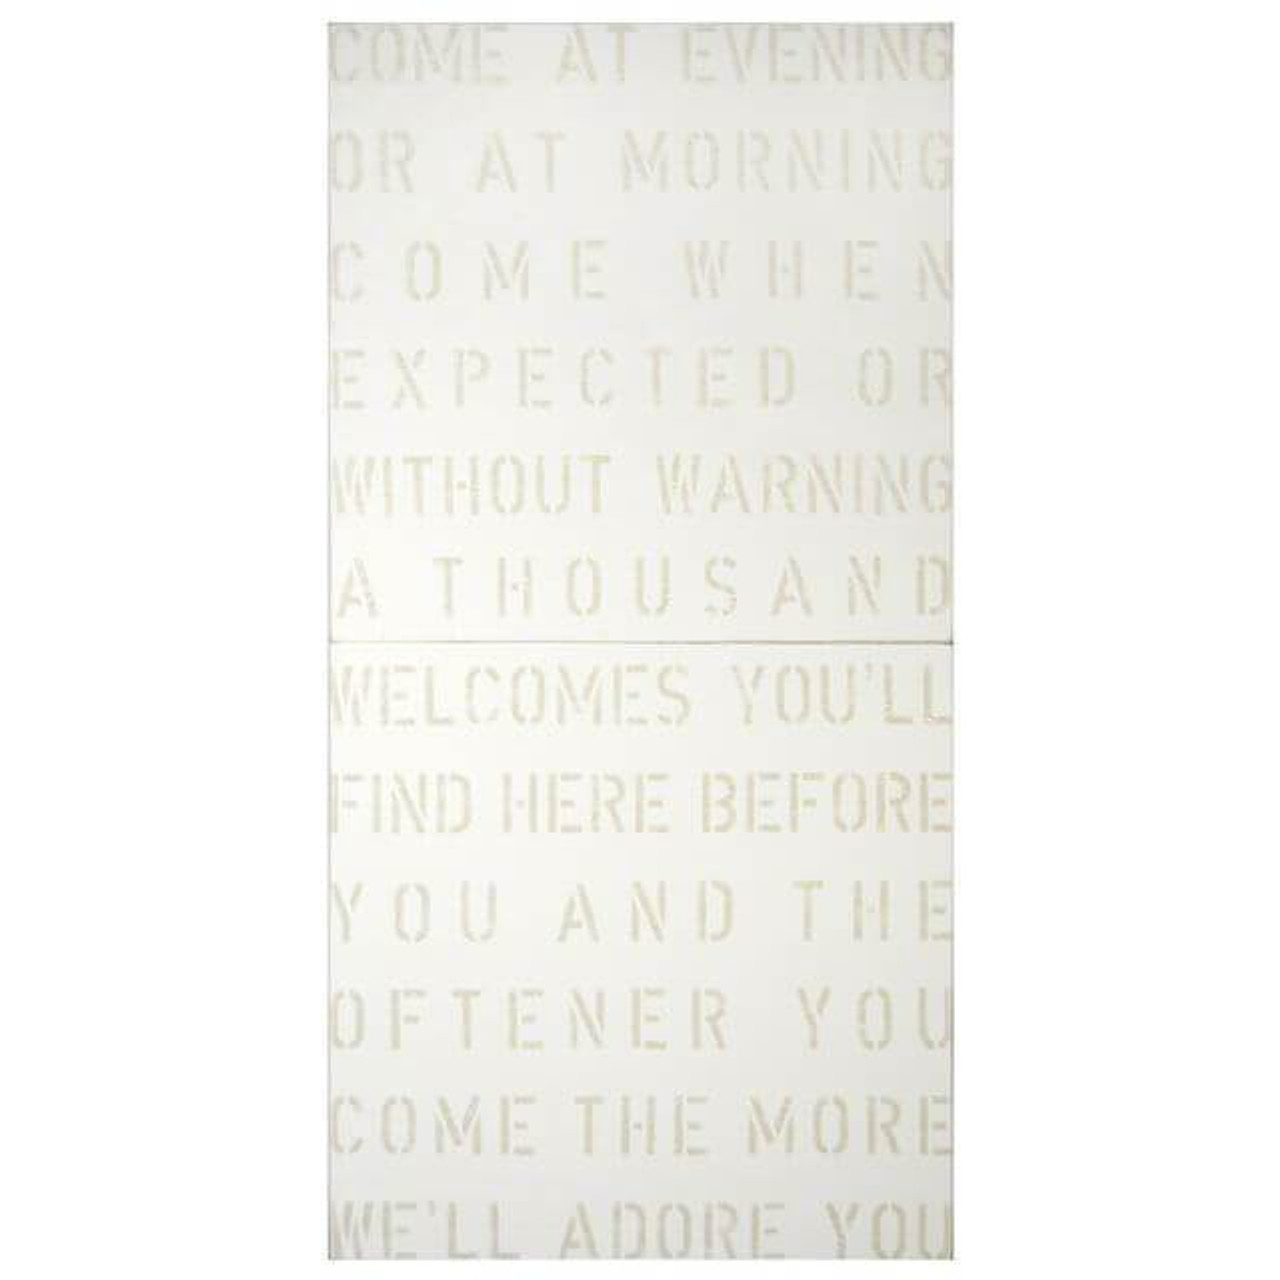 Antique Sign - Come at Evening in white with cream font